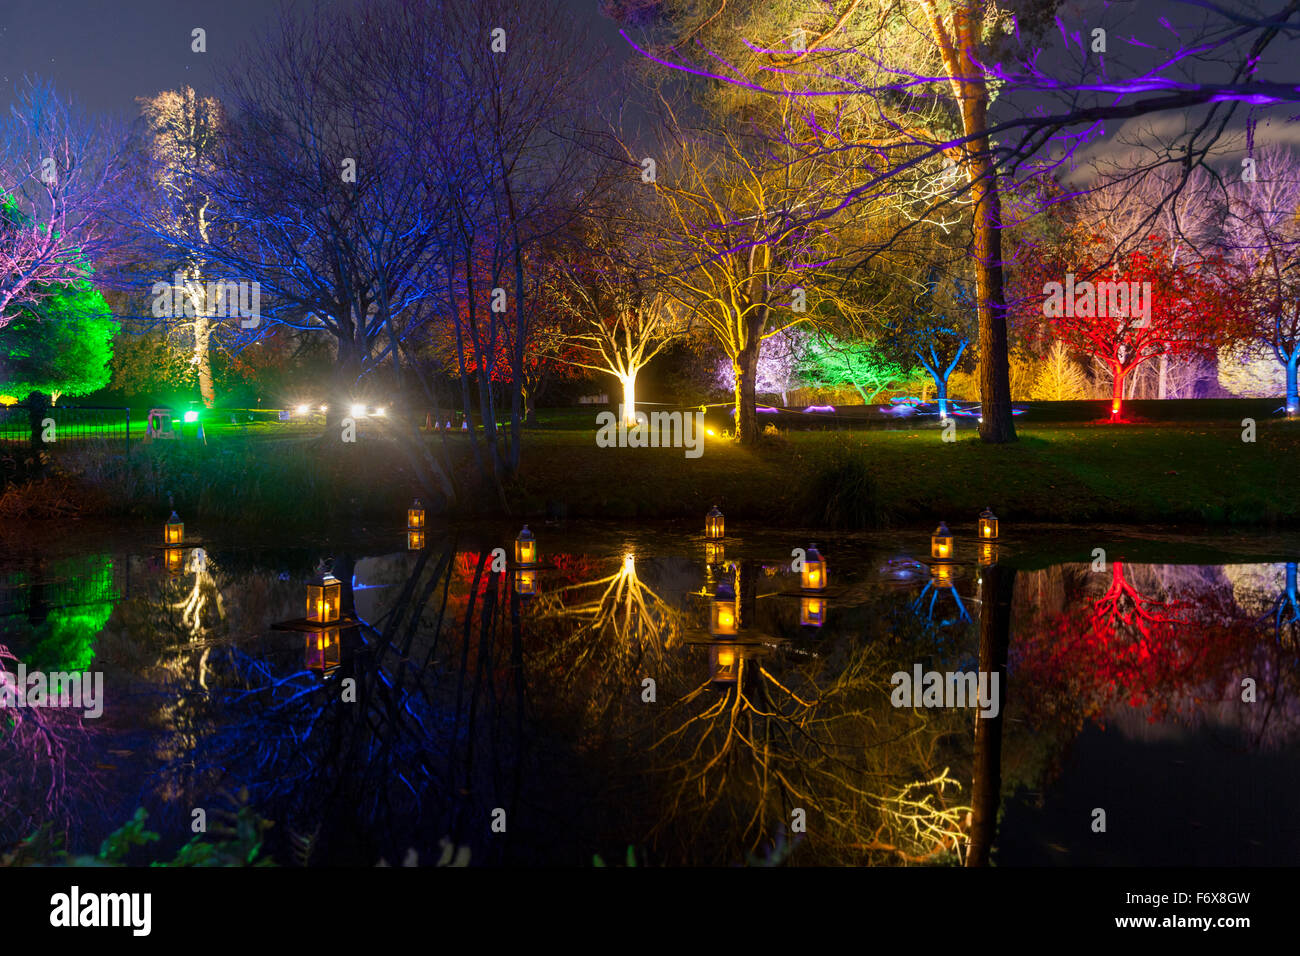 Brentford, London, UK. 20th Nov, 2015. The Enchanted Woodland returns to Syon Park and House in Brentford on November Stock Photo